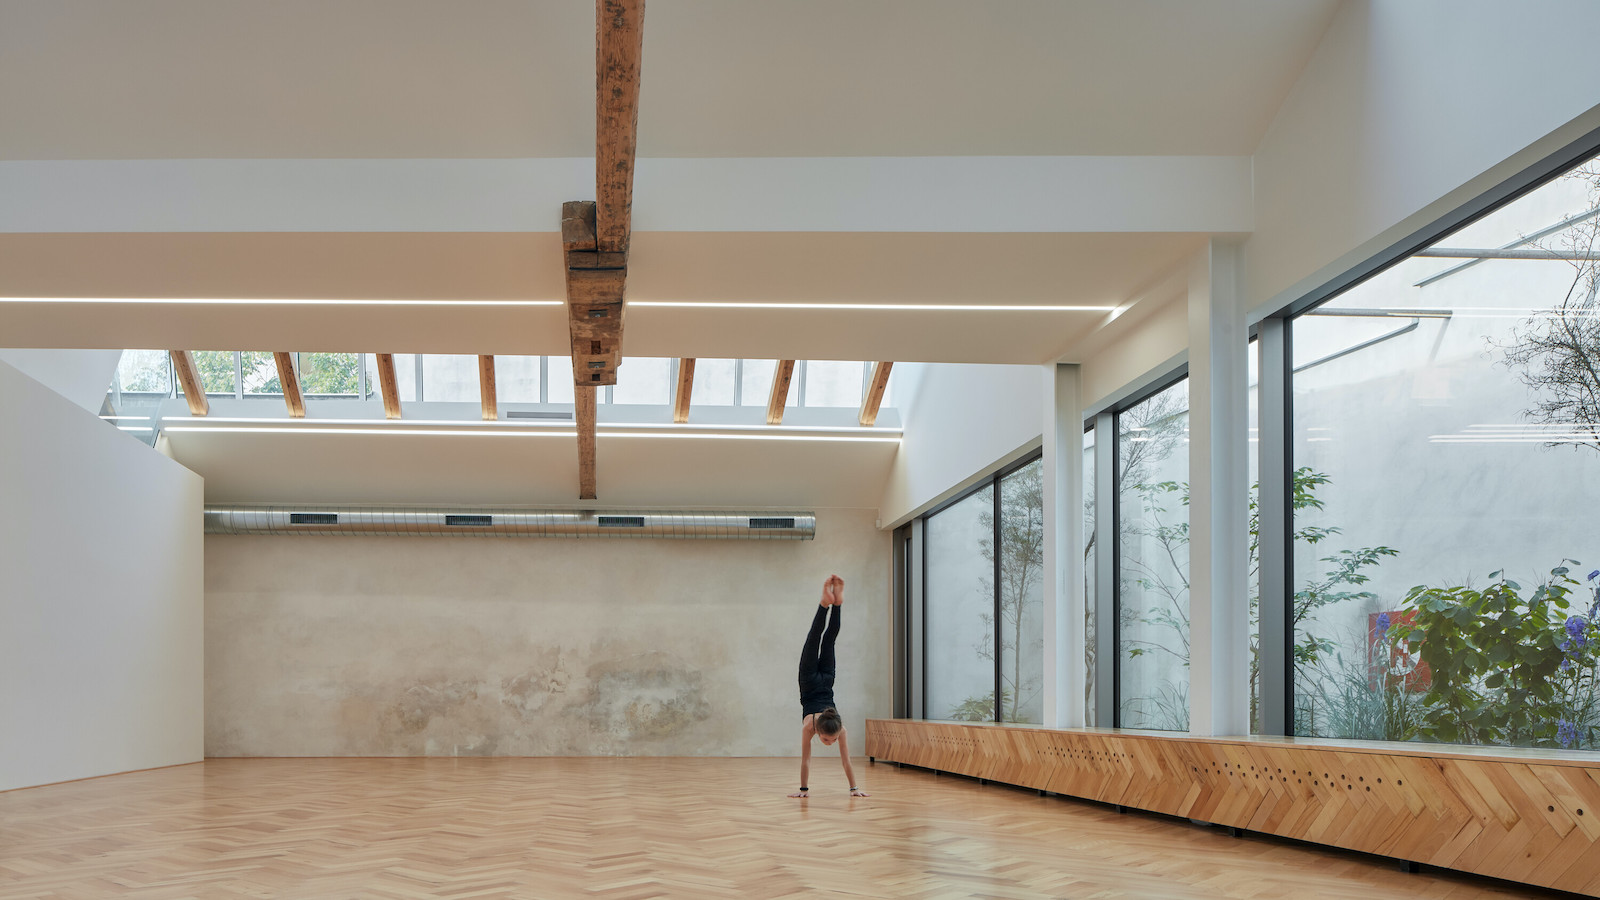 A Yoga Studio Inspired by Brno's Industrial Past